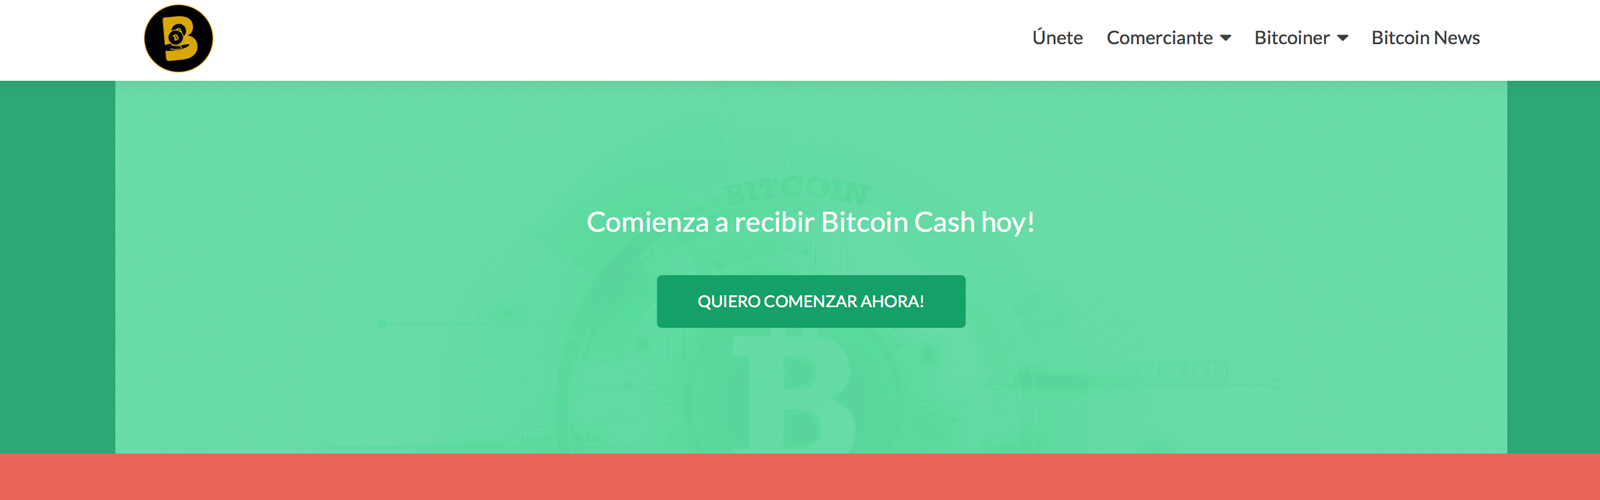 BCH Payment Processor Bitek Allows Colombian Merchants to Convert to Pesos